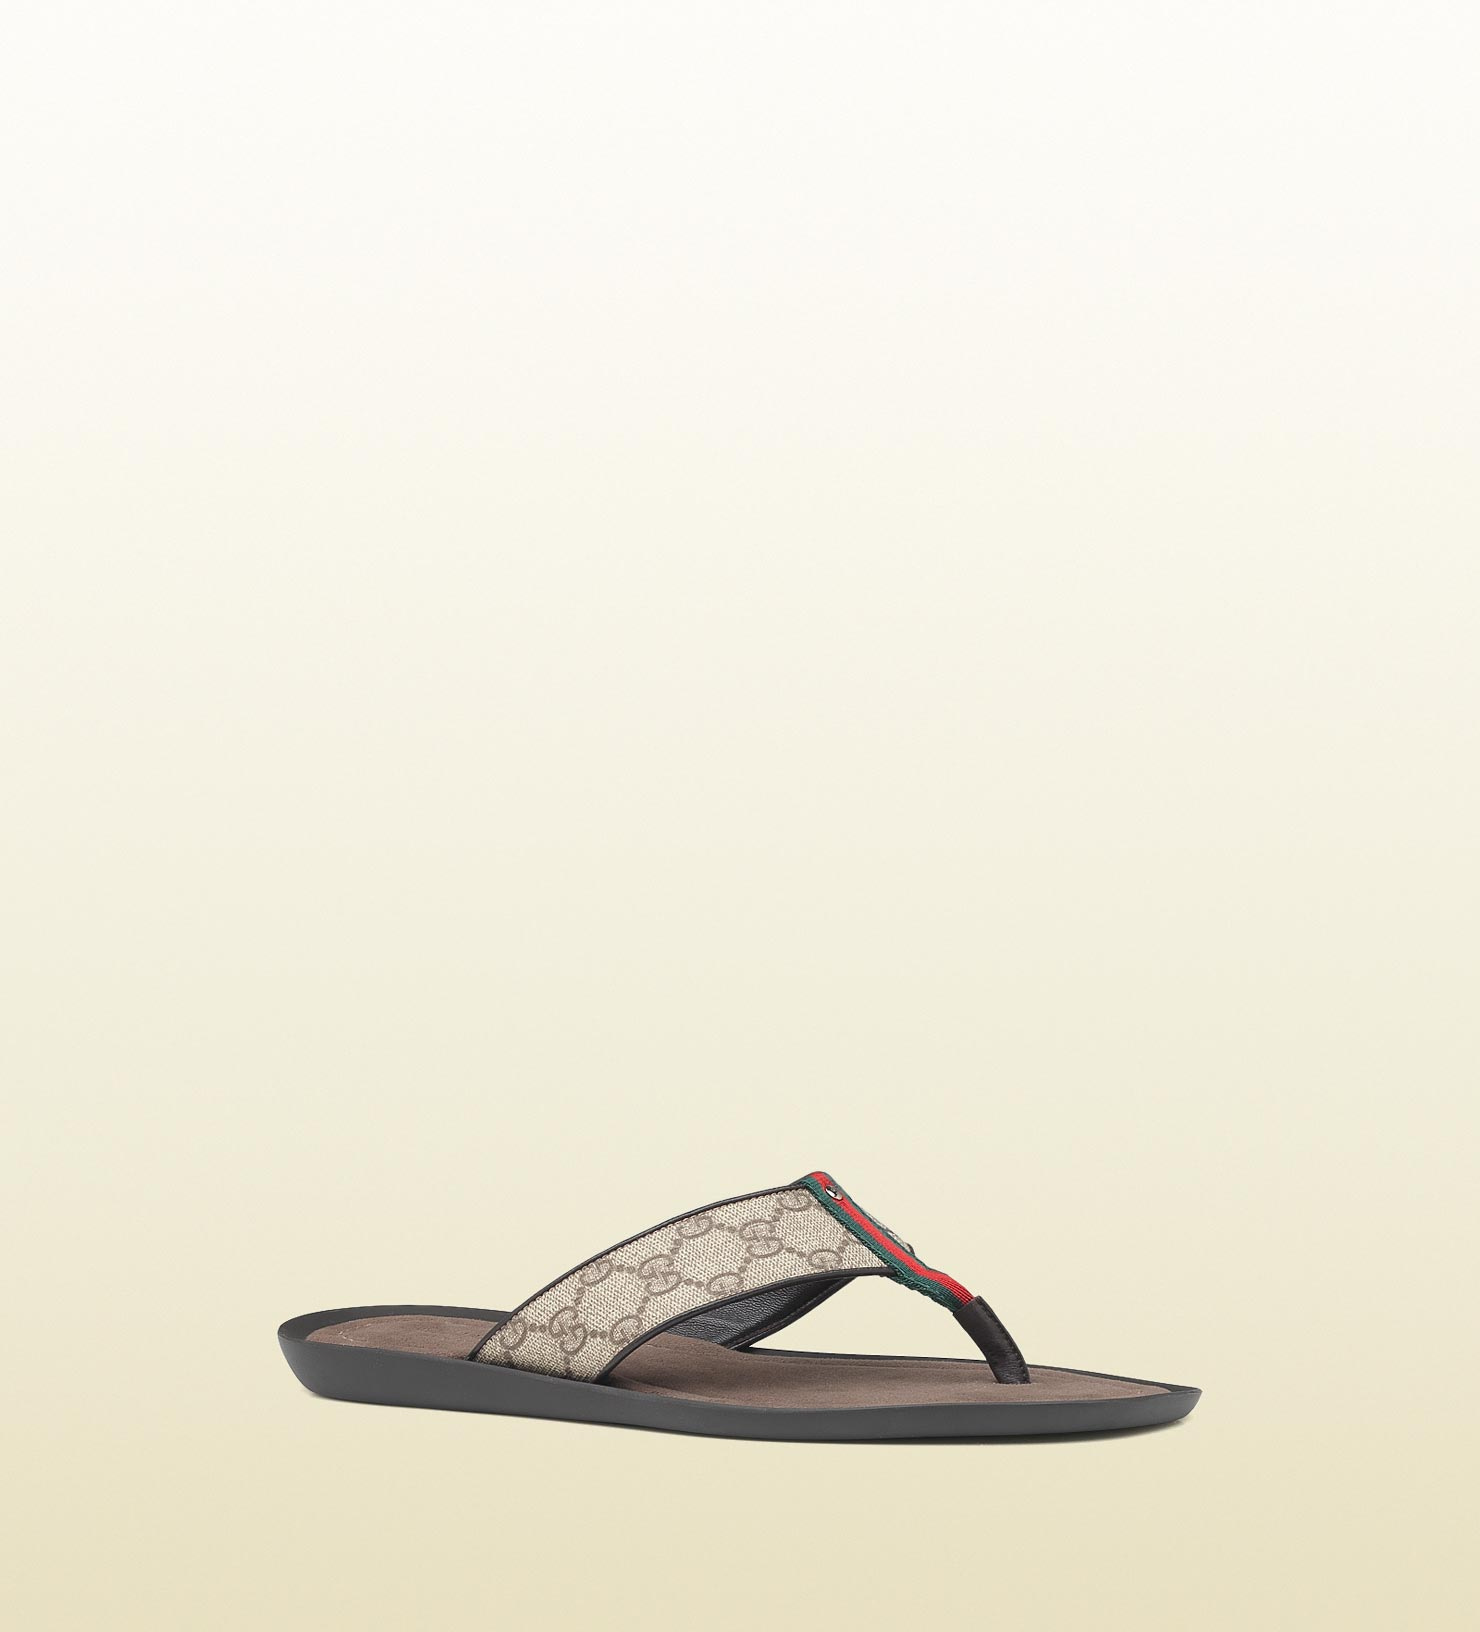 9aa76e89c6fc85 Gucci Thong Sandal with Signature Web Detail in Brown for Men - Lyst